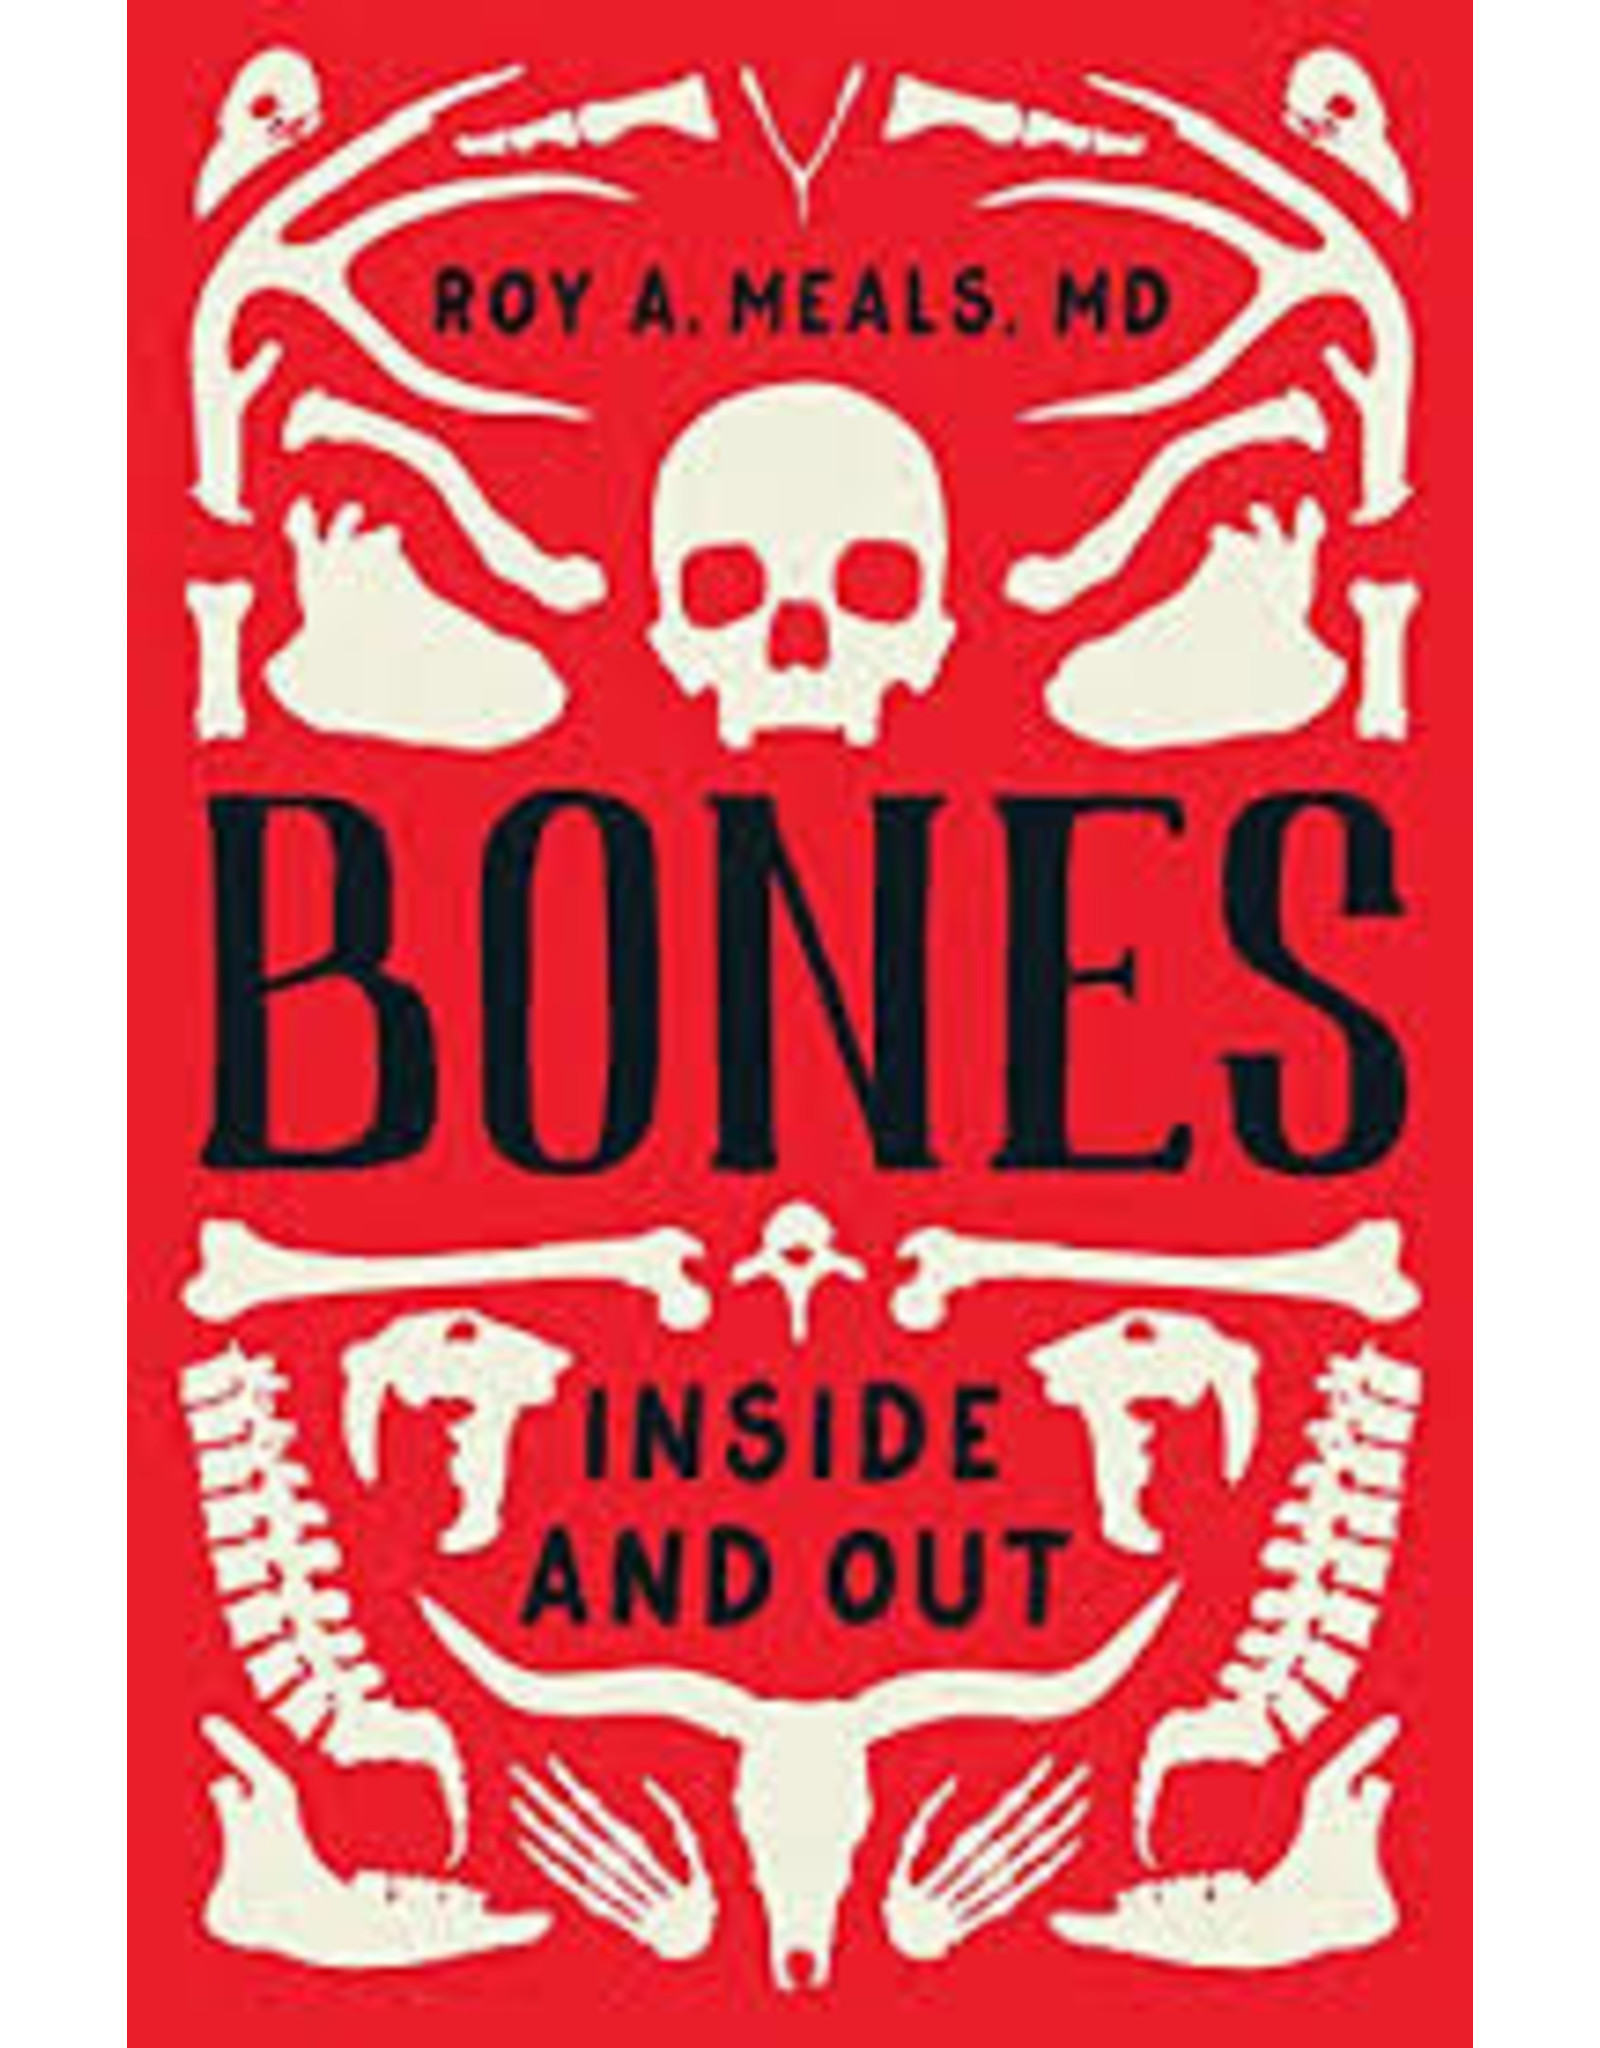 Books Bones: Inside and Out by Roy A. Meals, MD